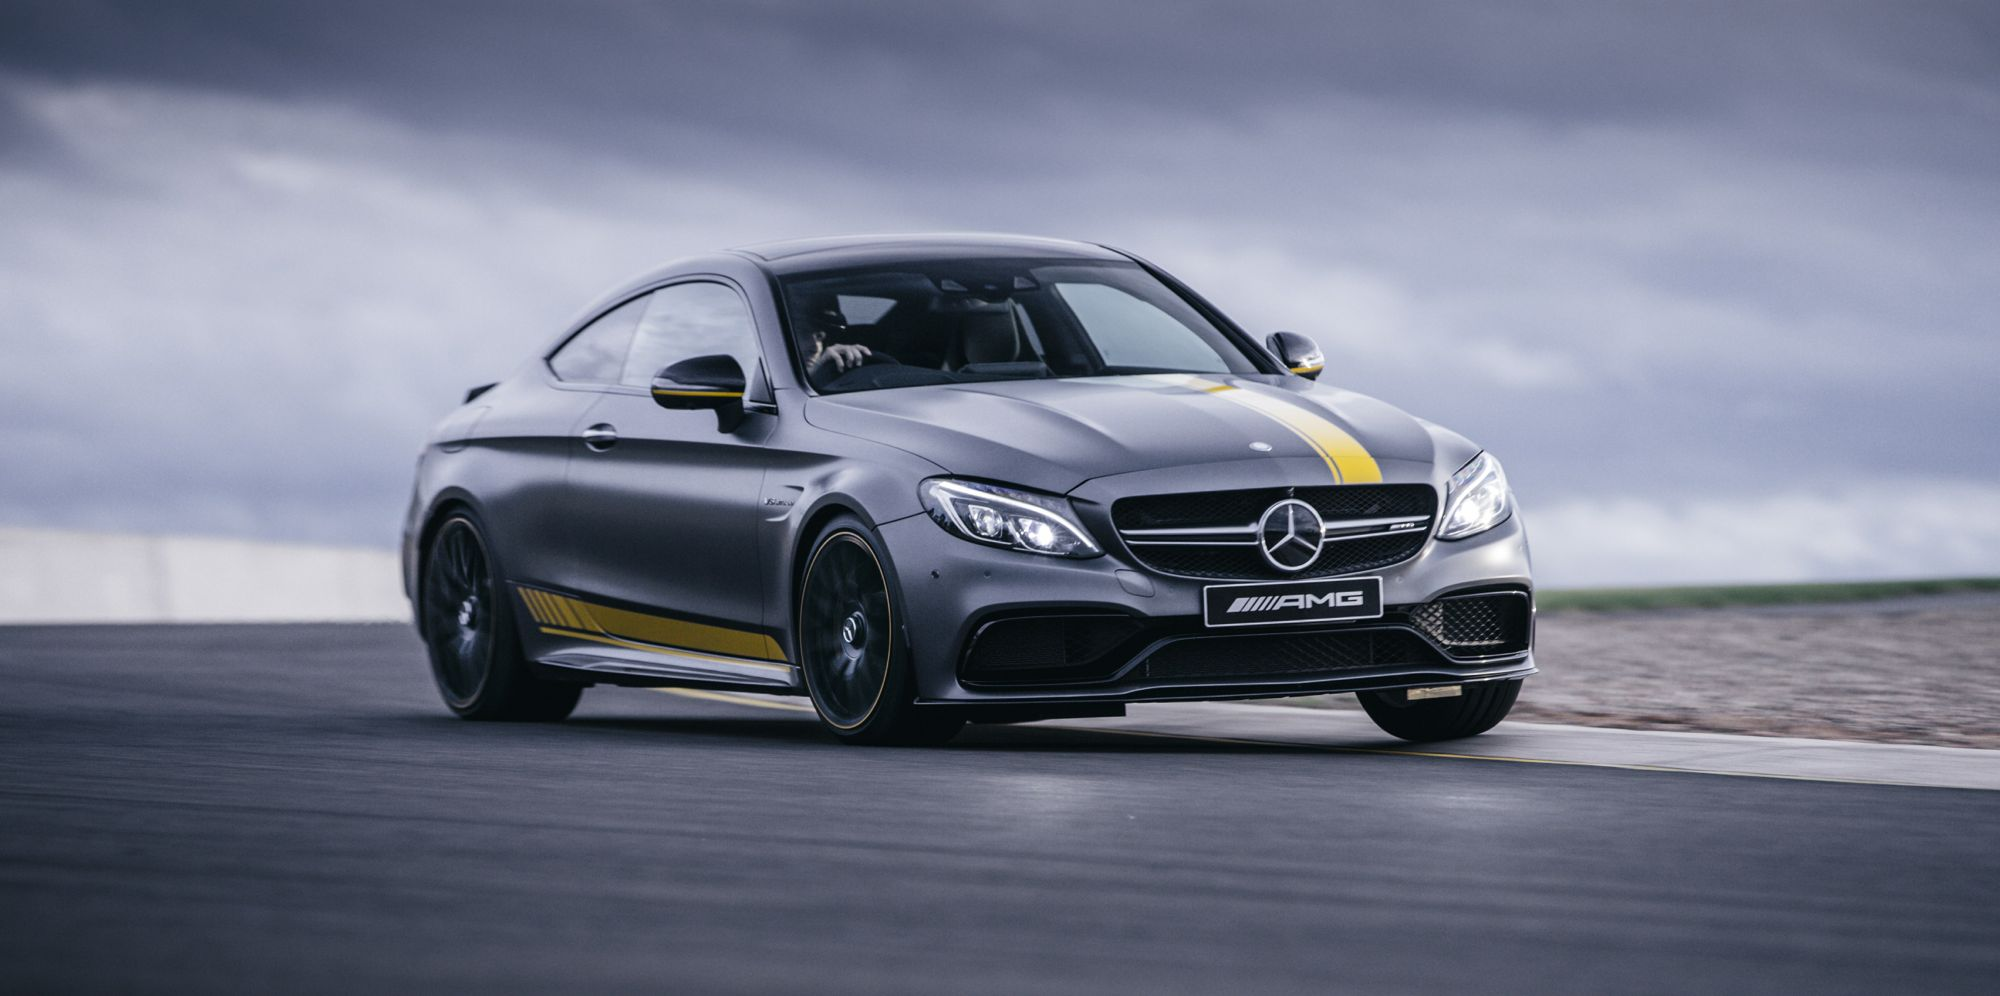 C63 Amg Coupe 2018 >> 2016 Mercedes-AMG C63 S Coupe Review: Track test - photos | CarAdvice